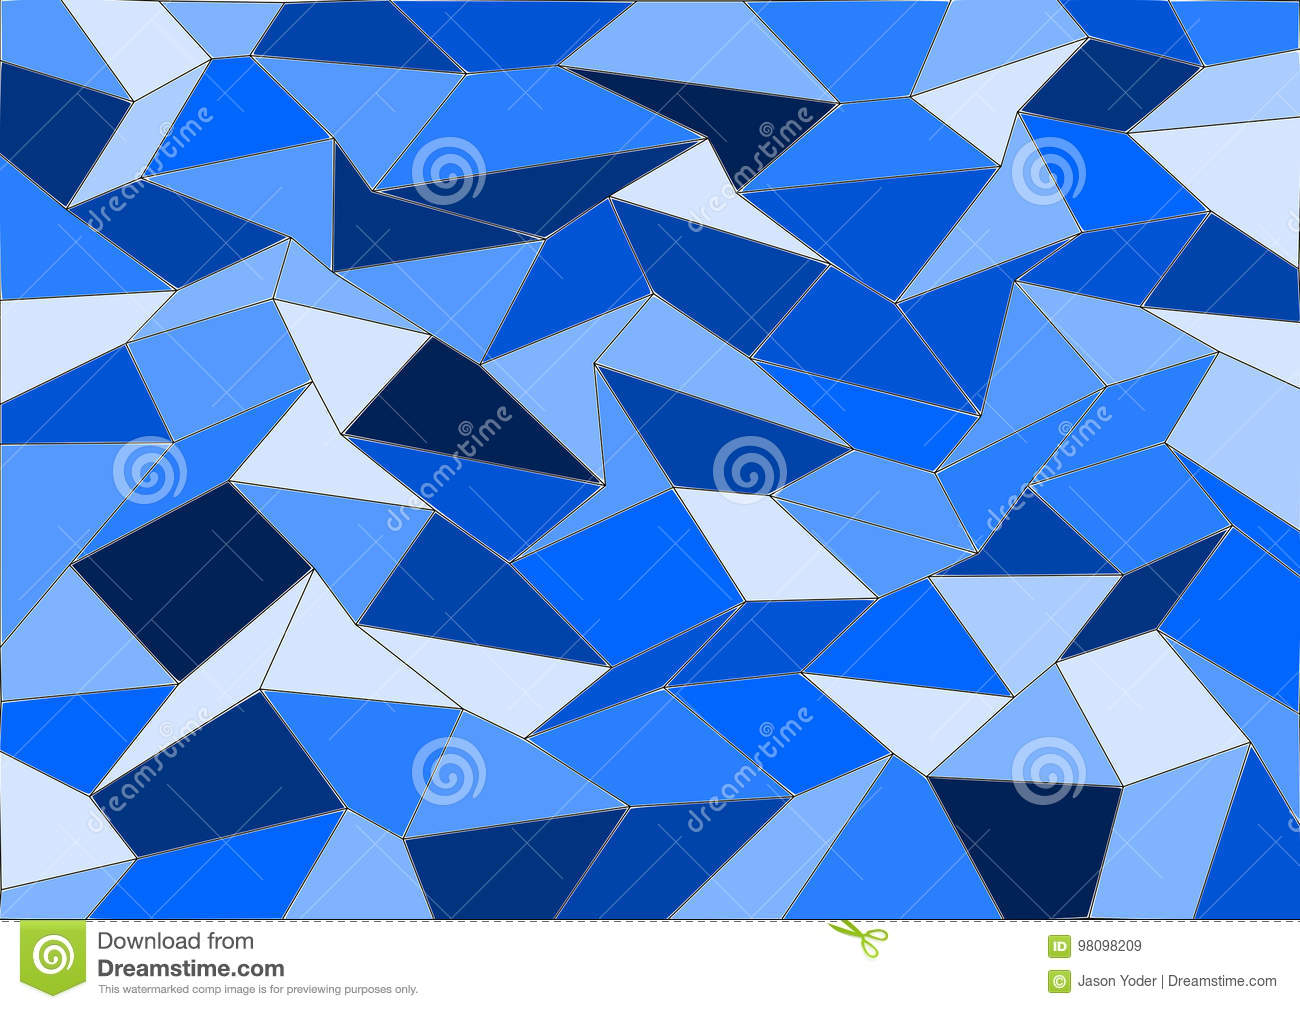 Blue Vector Tile Mosaic Background Stock Vector - Illustration of ...